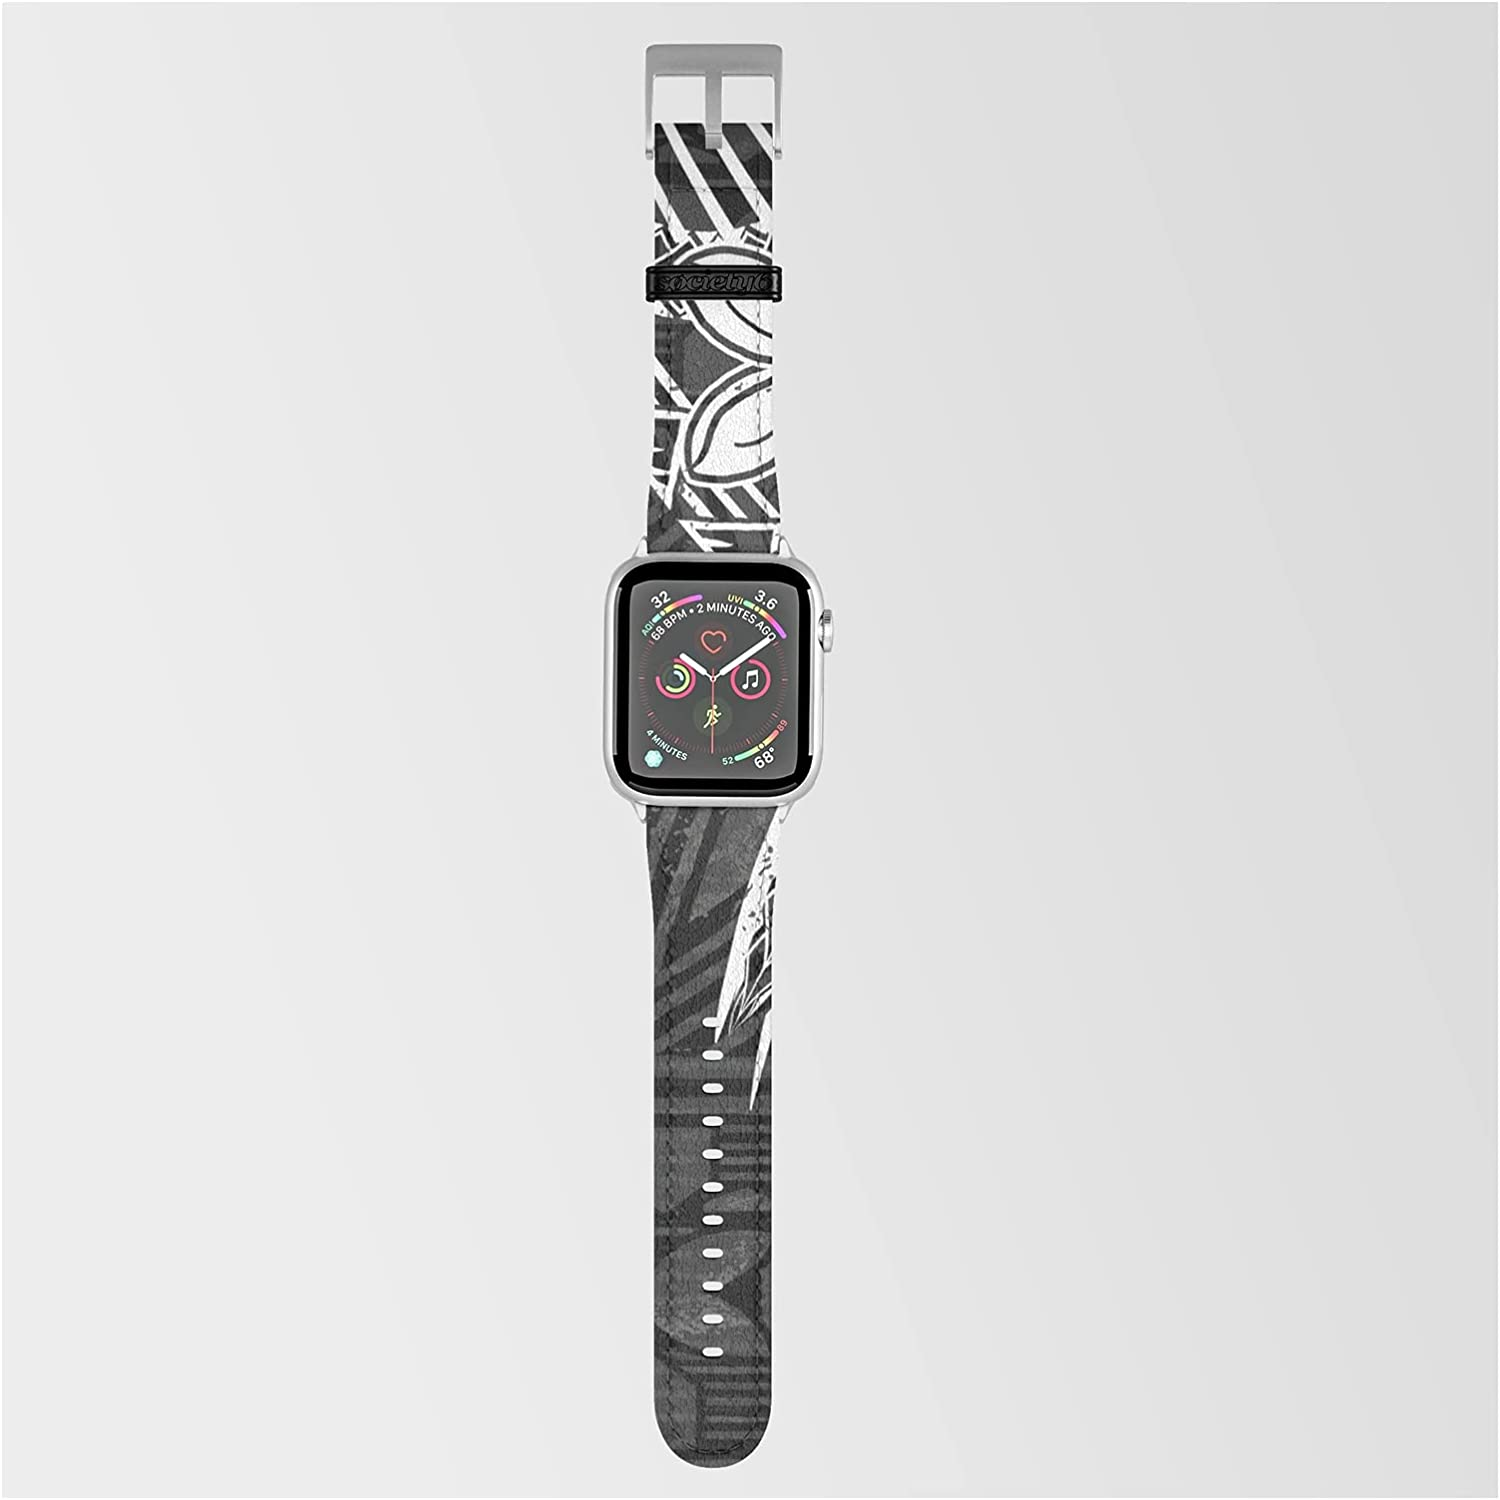 Vintage Max 80% OFF Samoan Tapa Print by Sun Threads Co N Smartwatch Band Gifts on